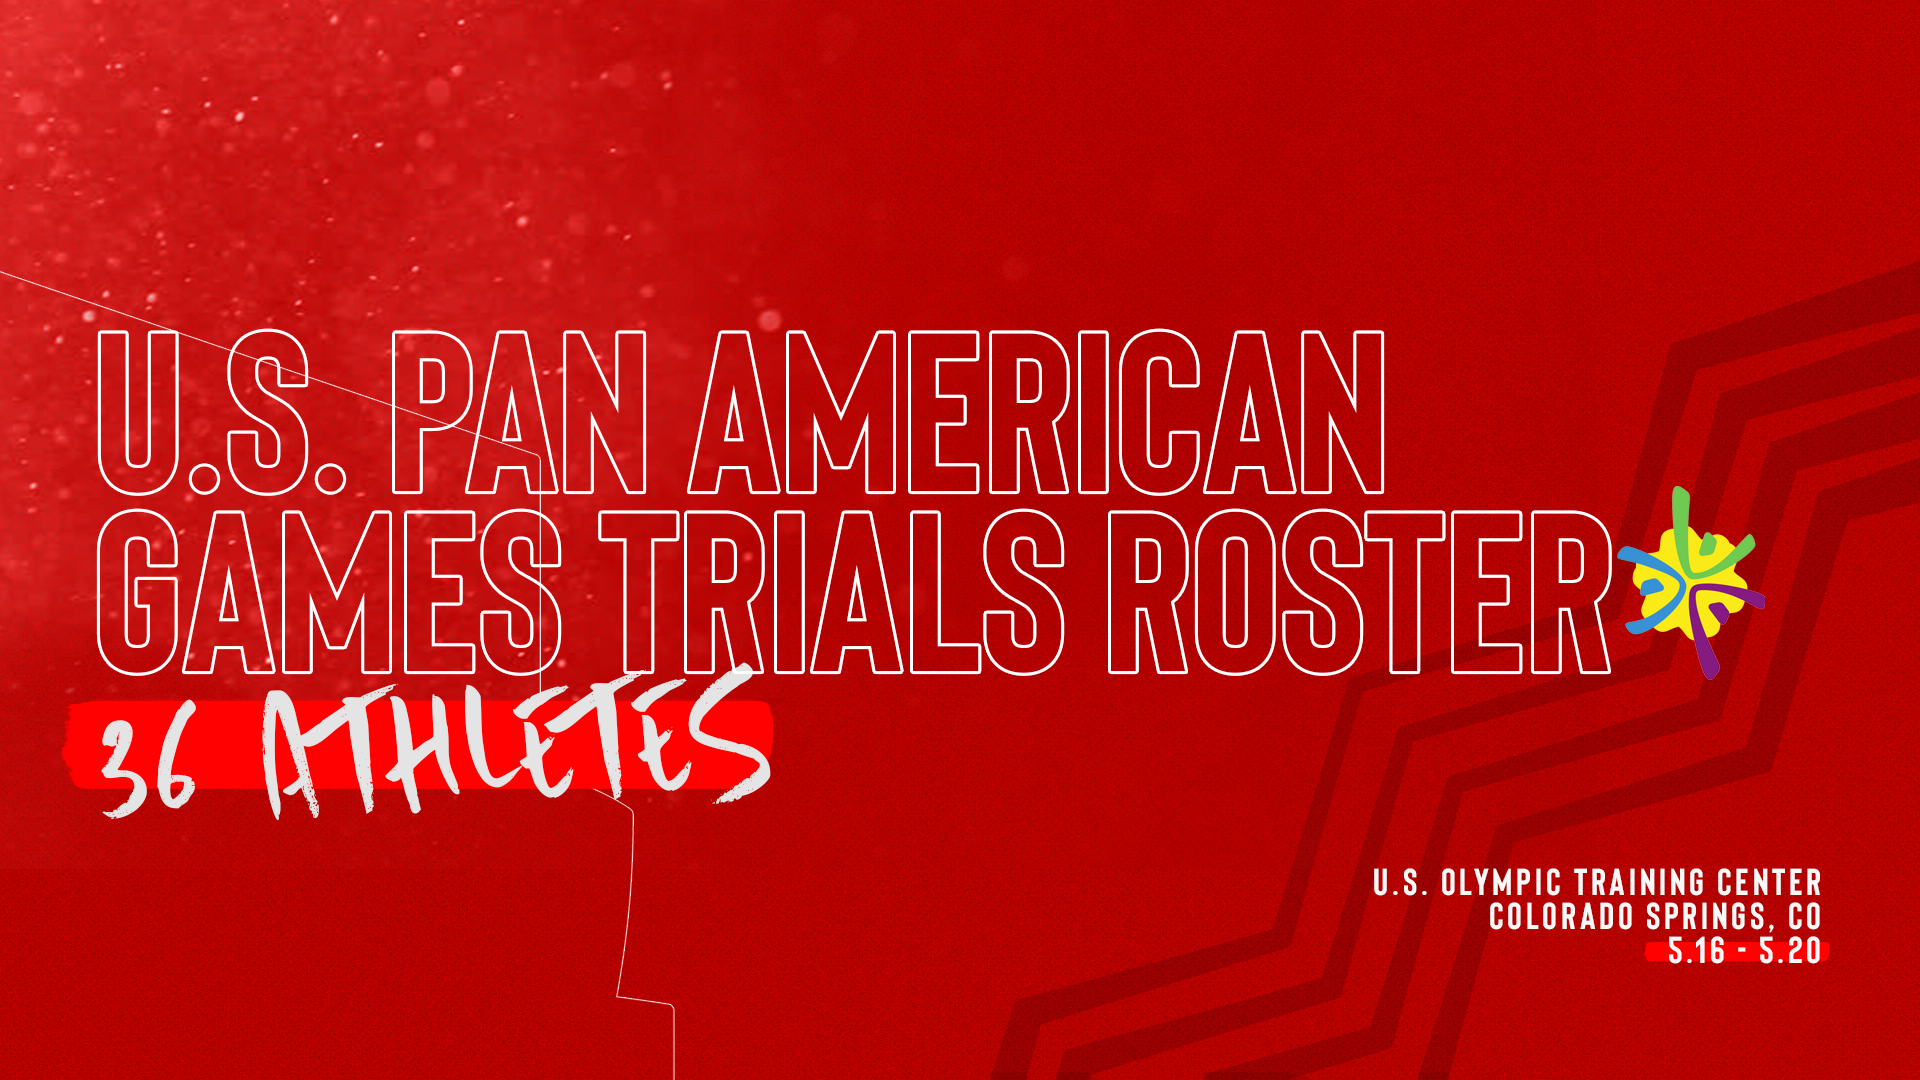 2019 U.S. Pan American Games Women's Basketball Team Trials Roster